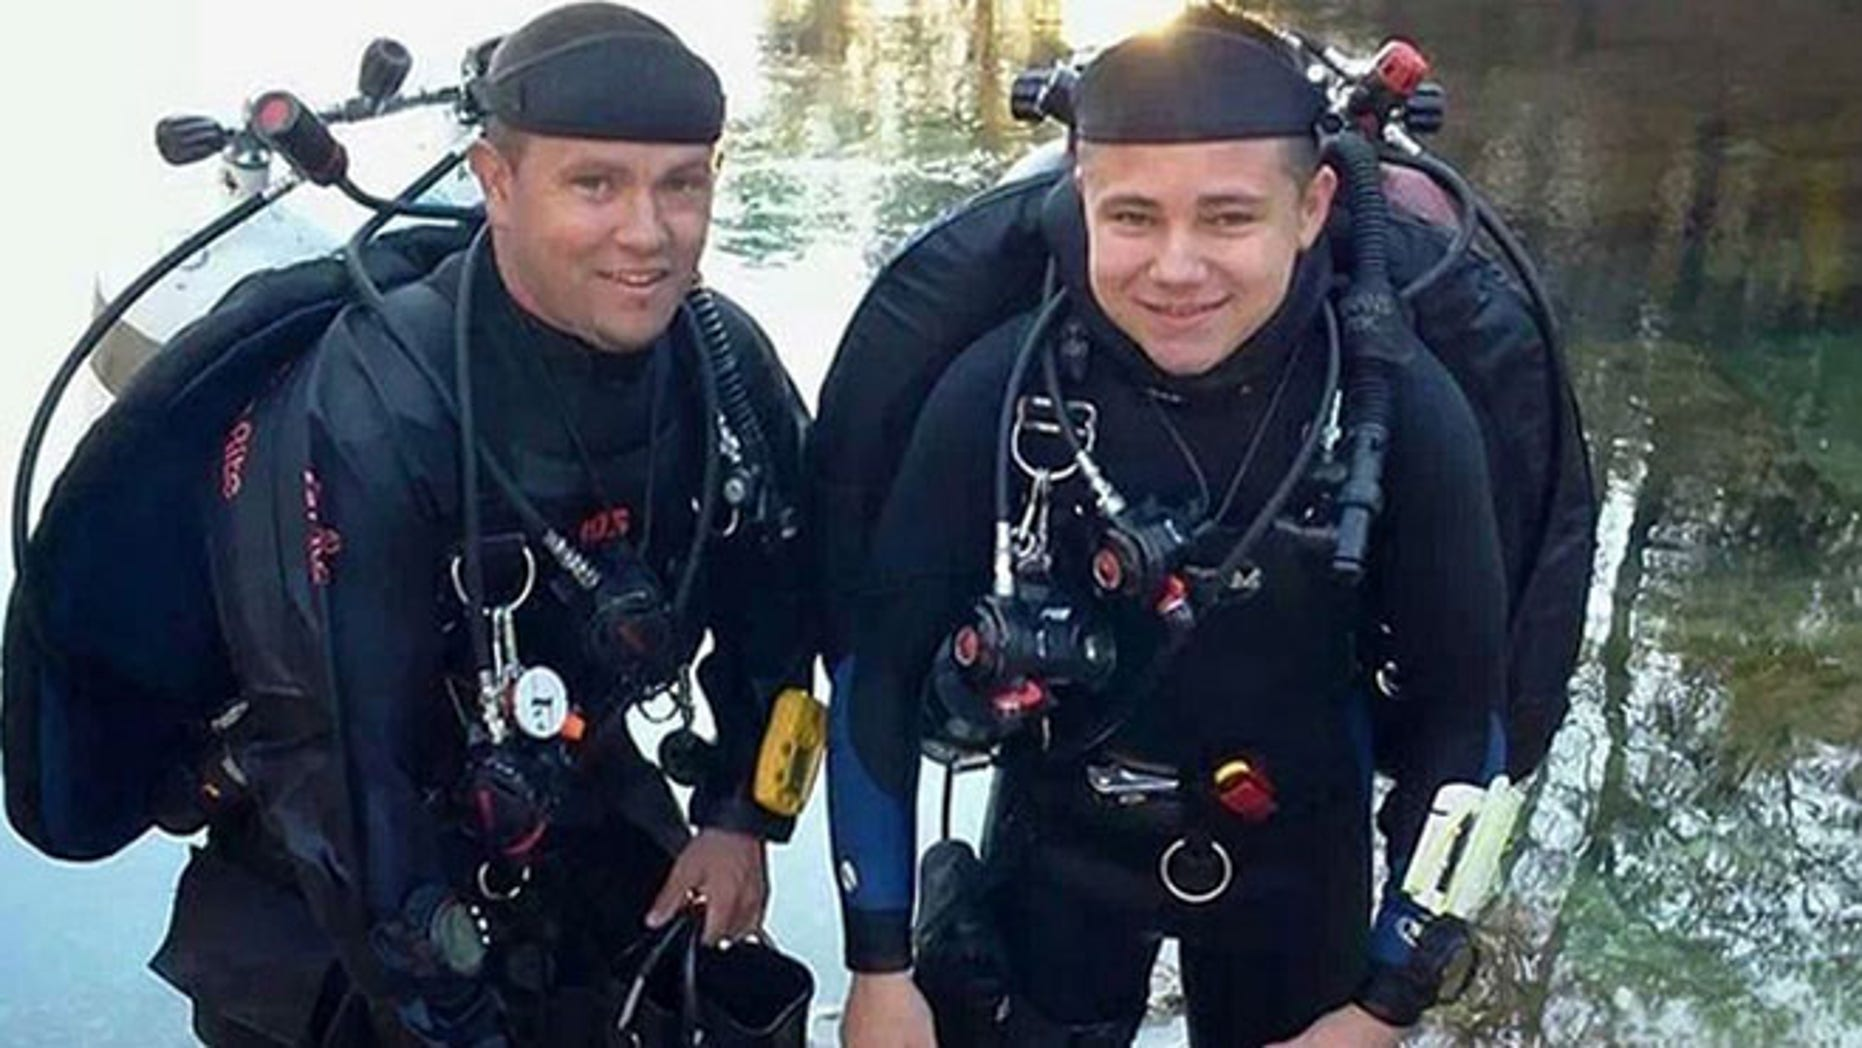 Deputies say Darrin Spivey and his 15-year-old son, Dillon Sanchez, were testing diving equipment they received as Christmas presents.